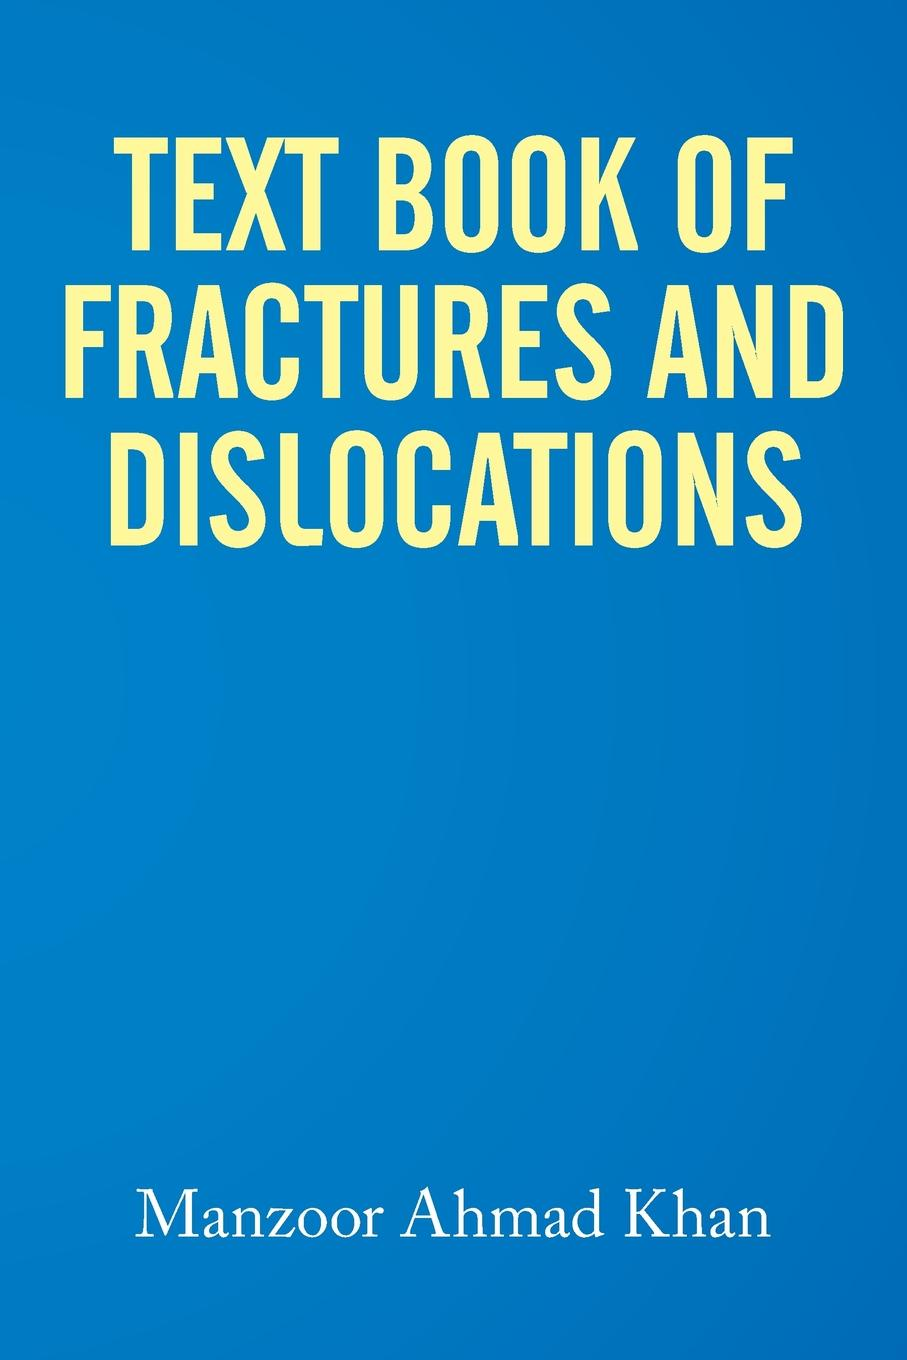 Manzoor Ahmad Khan Textbook of Fractures and Dislocations epidemiology of lower limb fractures and ambulatory rehabilitation